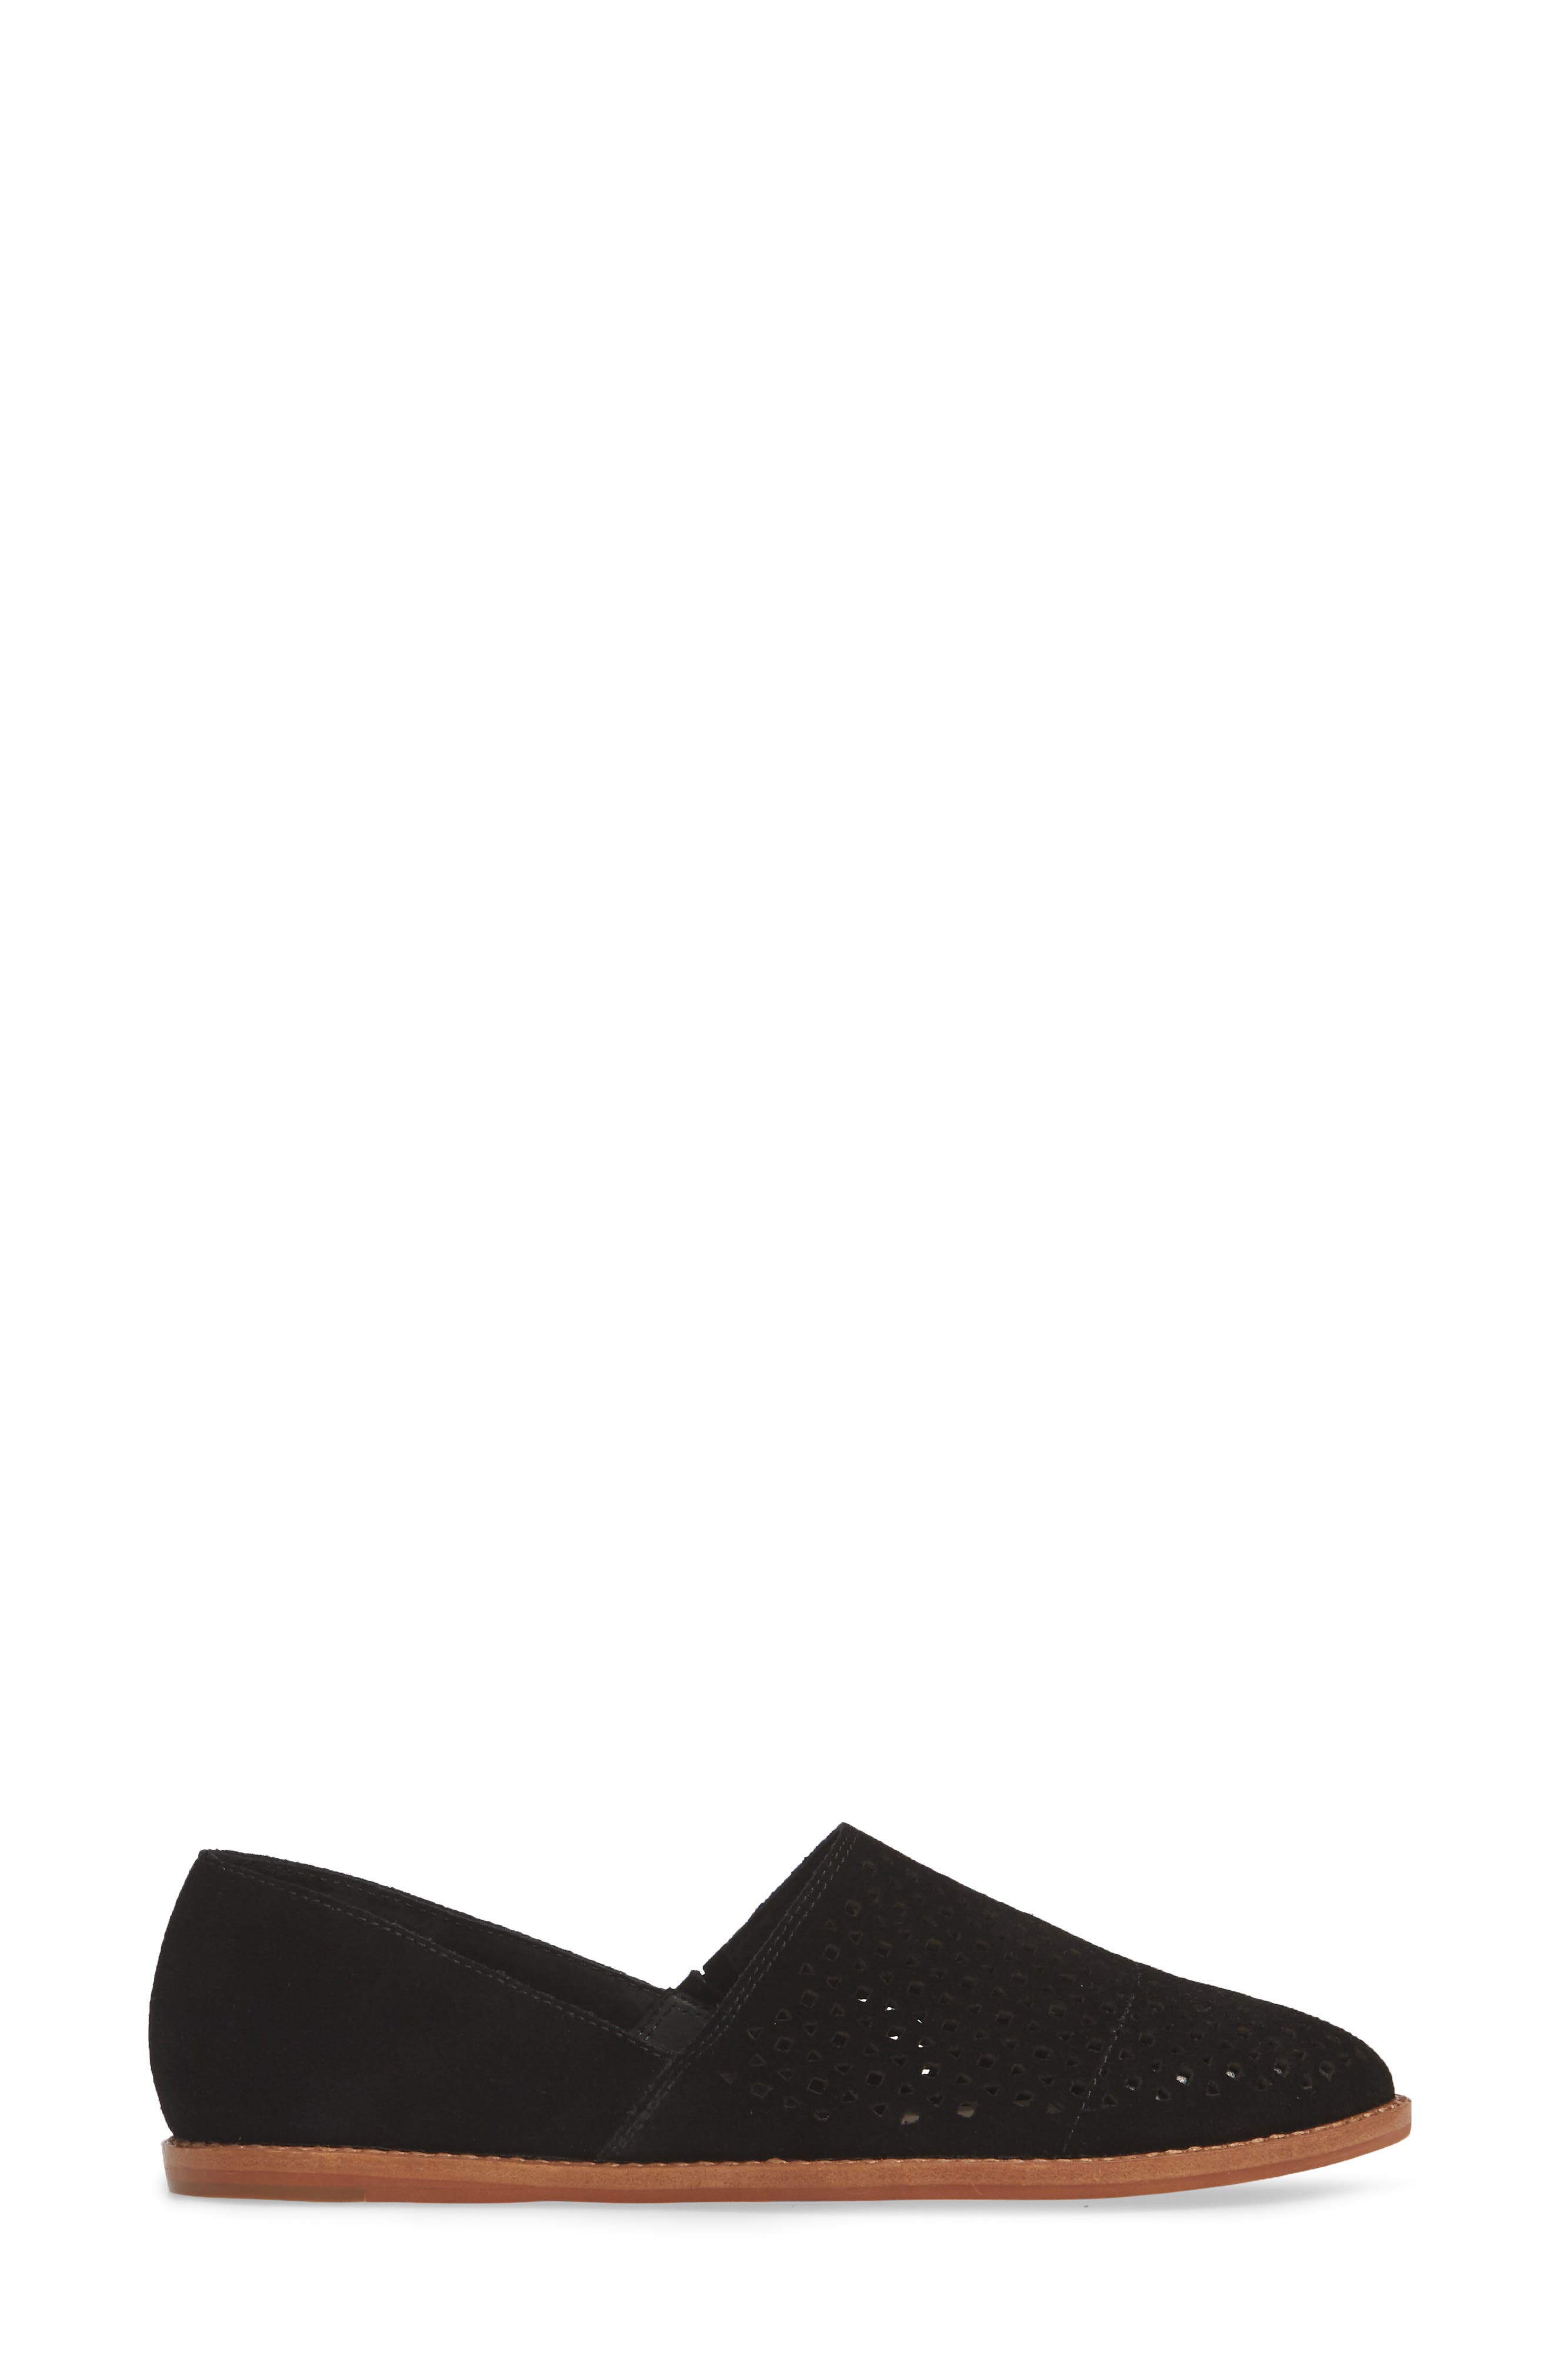 CASLON<SUP>®</SUP>,                             Adrian Perforated Flat,                             Alternate thumbnail 3, color,                             BLACK SUEDE